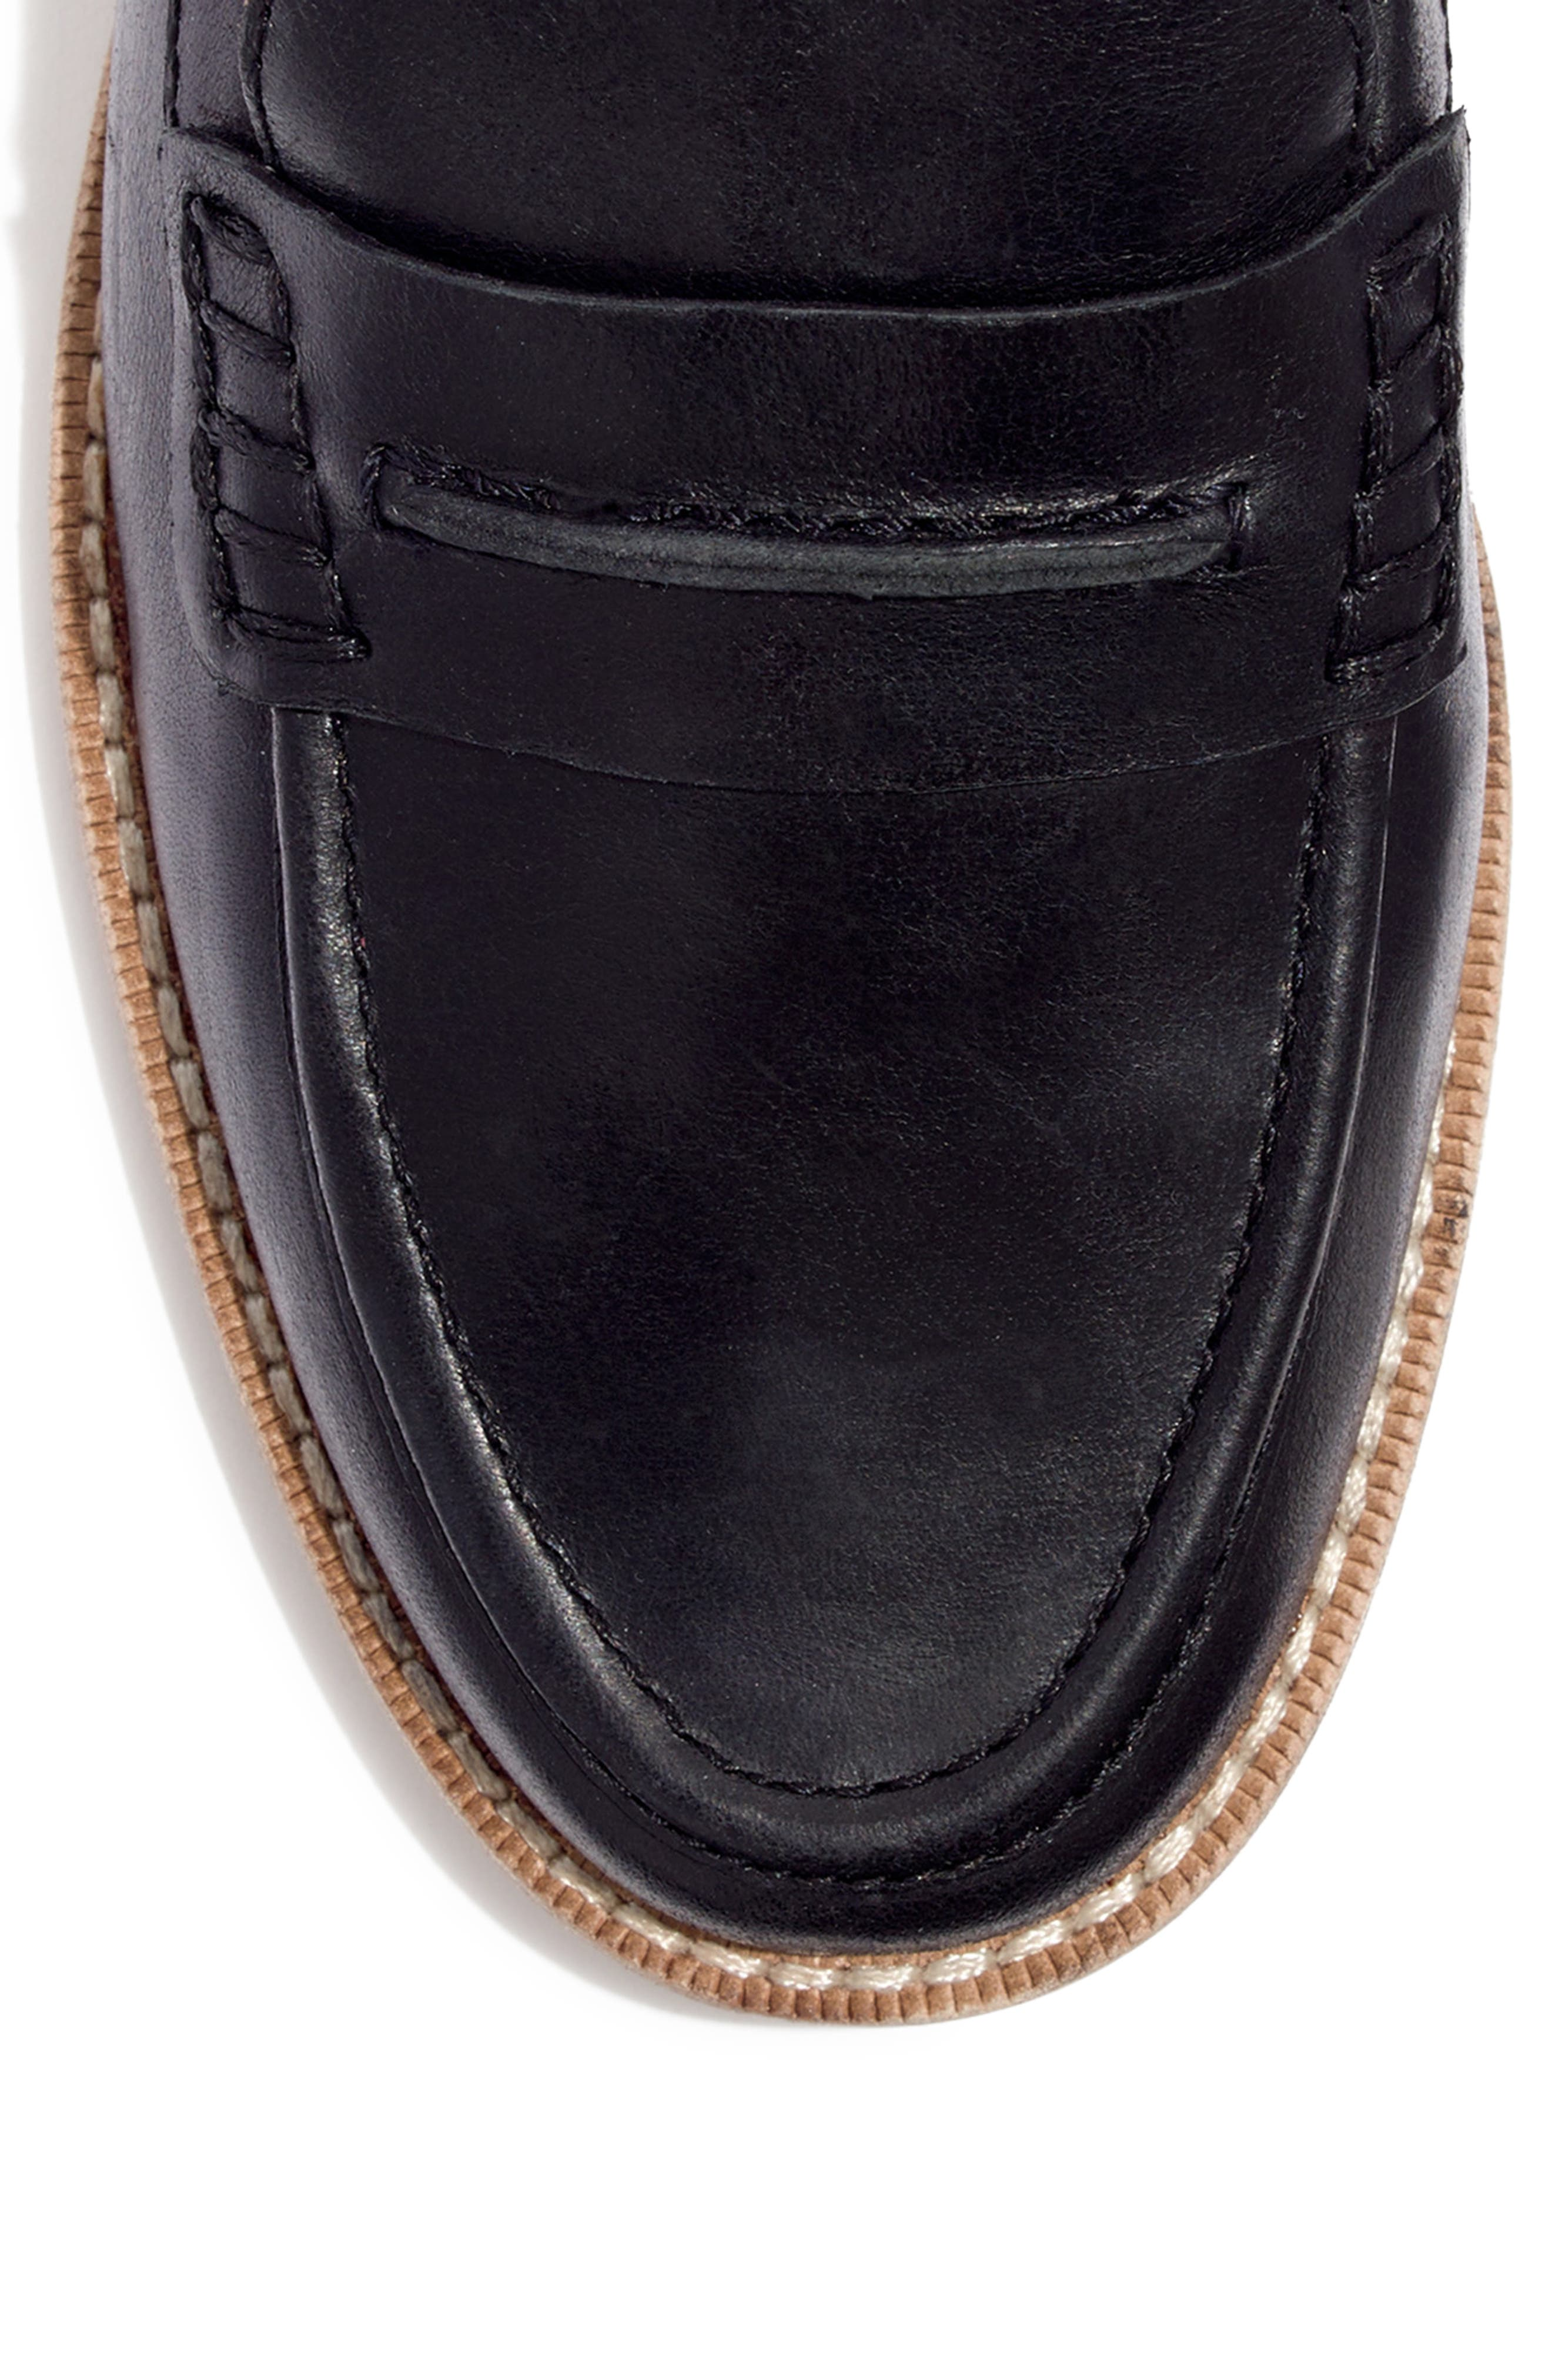 MADEWELL, The Elinor Loafer, Alternate thumbnail 8, color, BLACK LEATHER